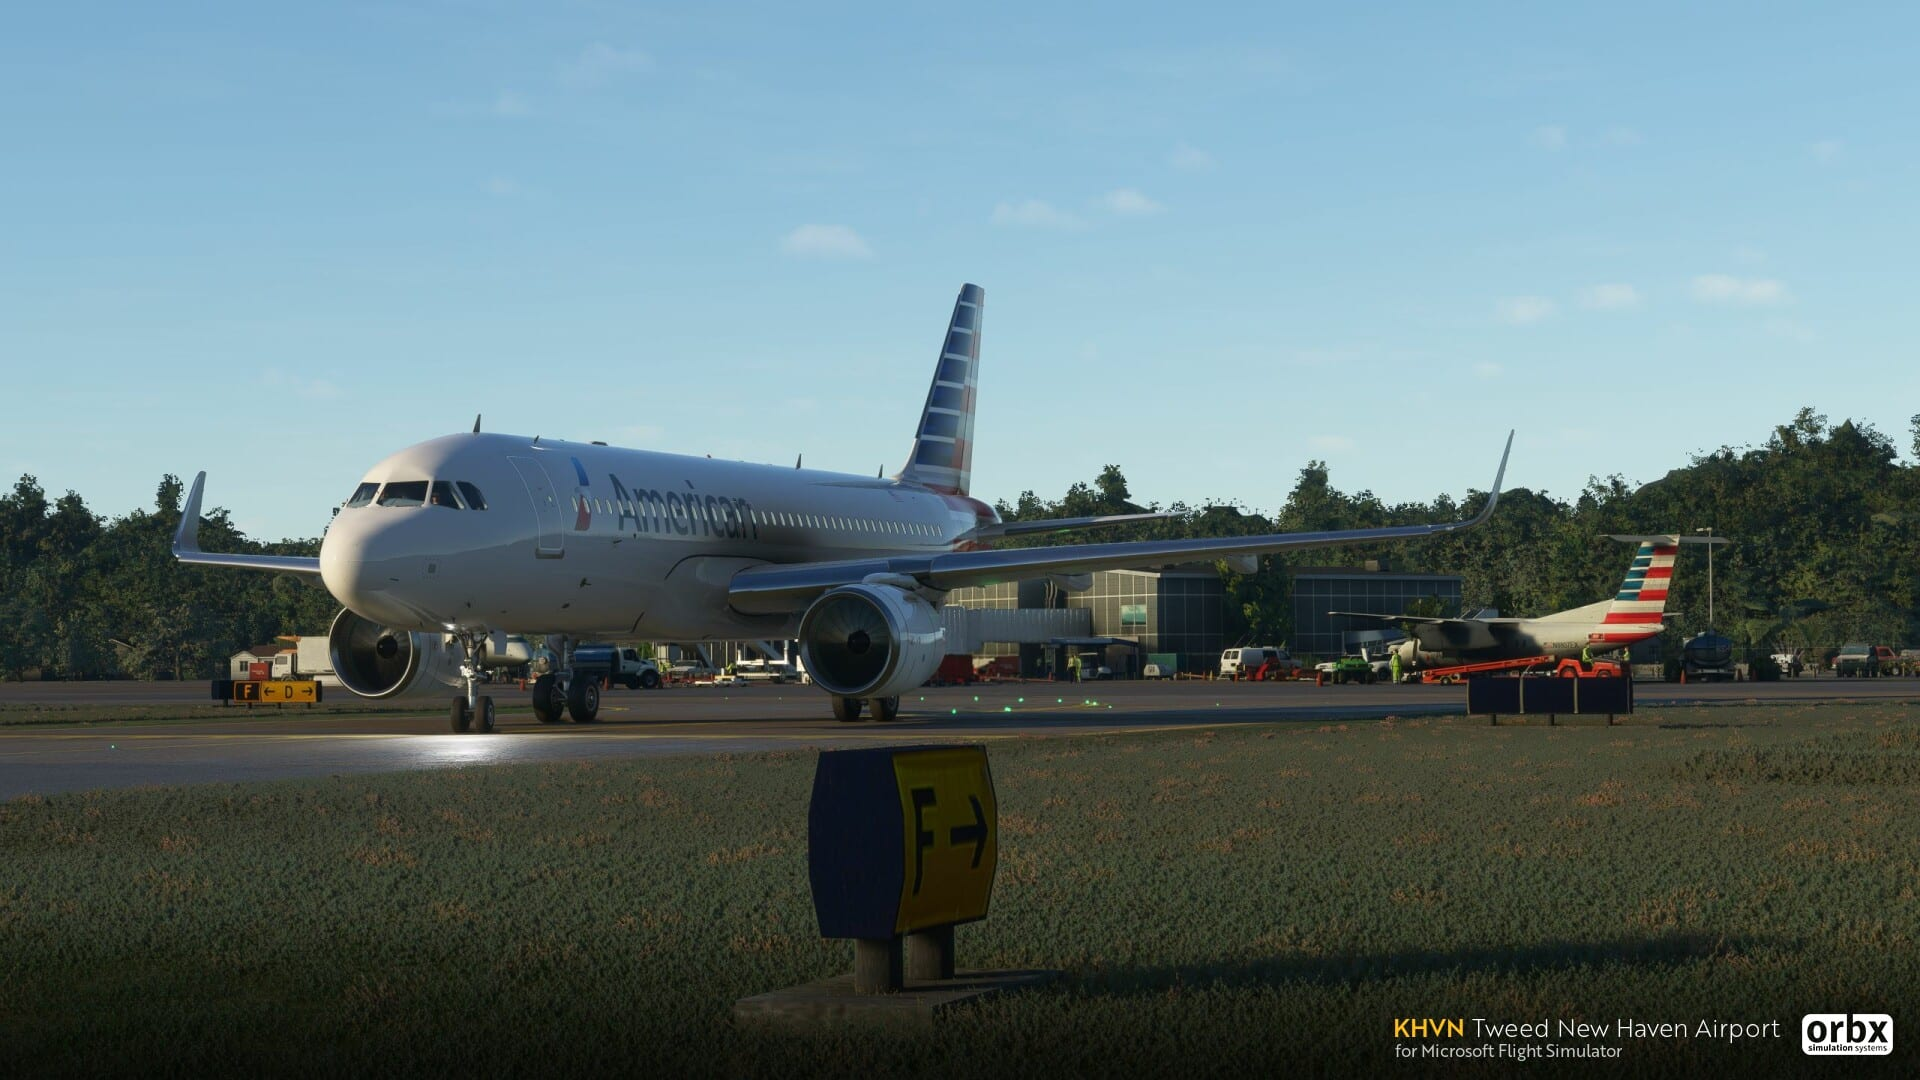 Microsoft Flight Simulator Tweed New Haven Airport Add-On Introduced by Orbx 1